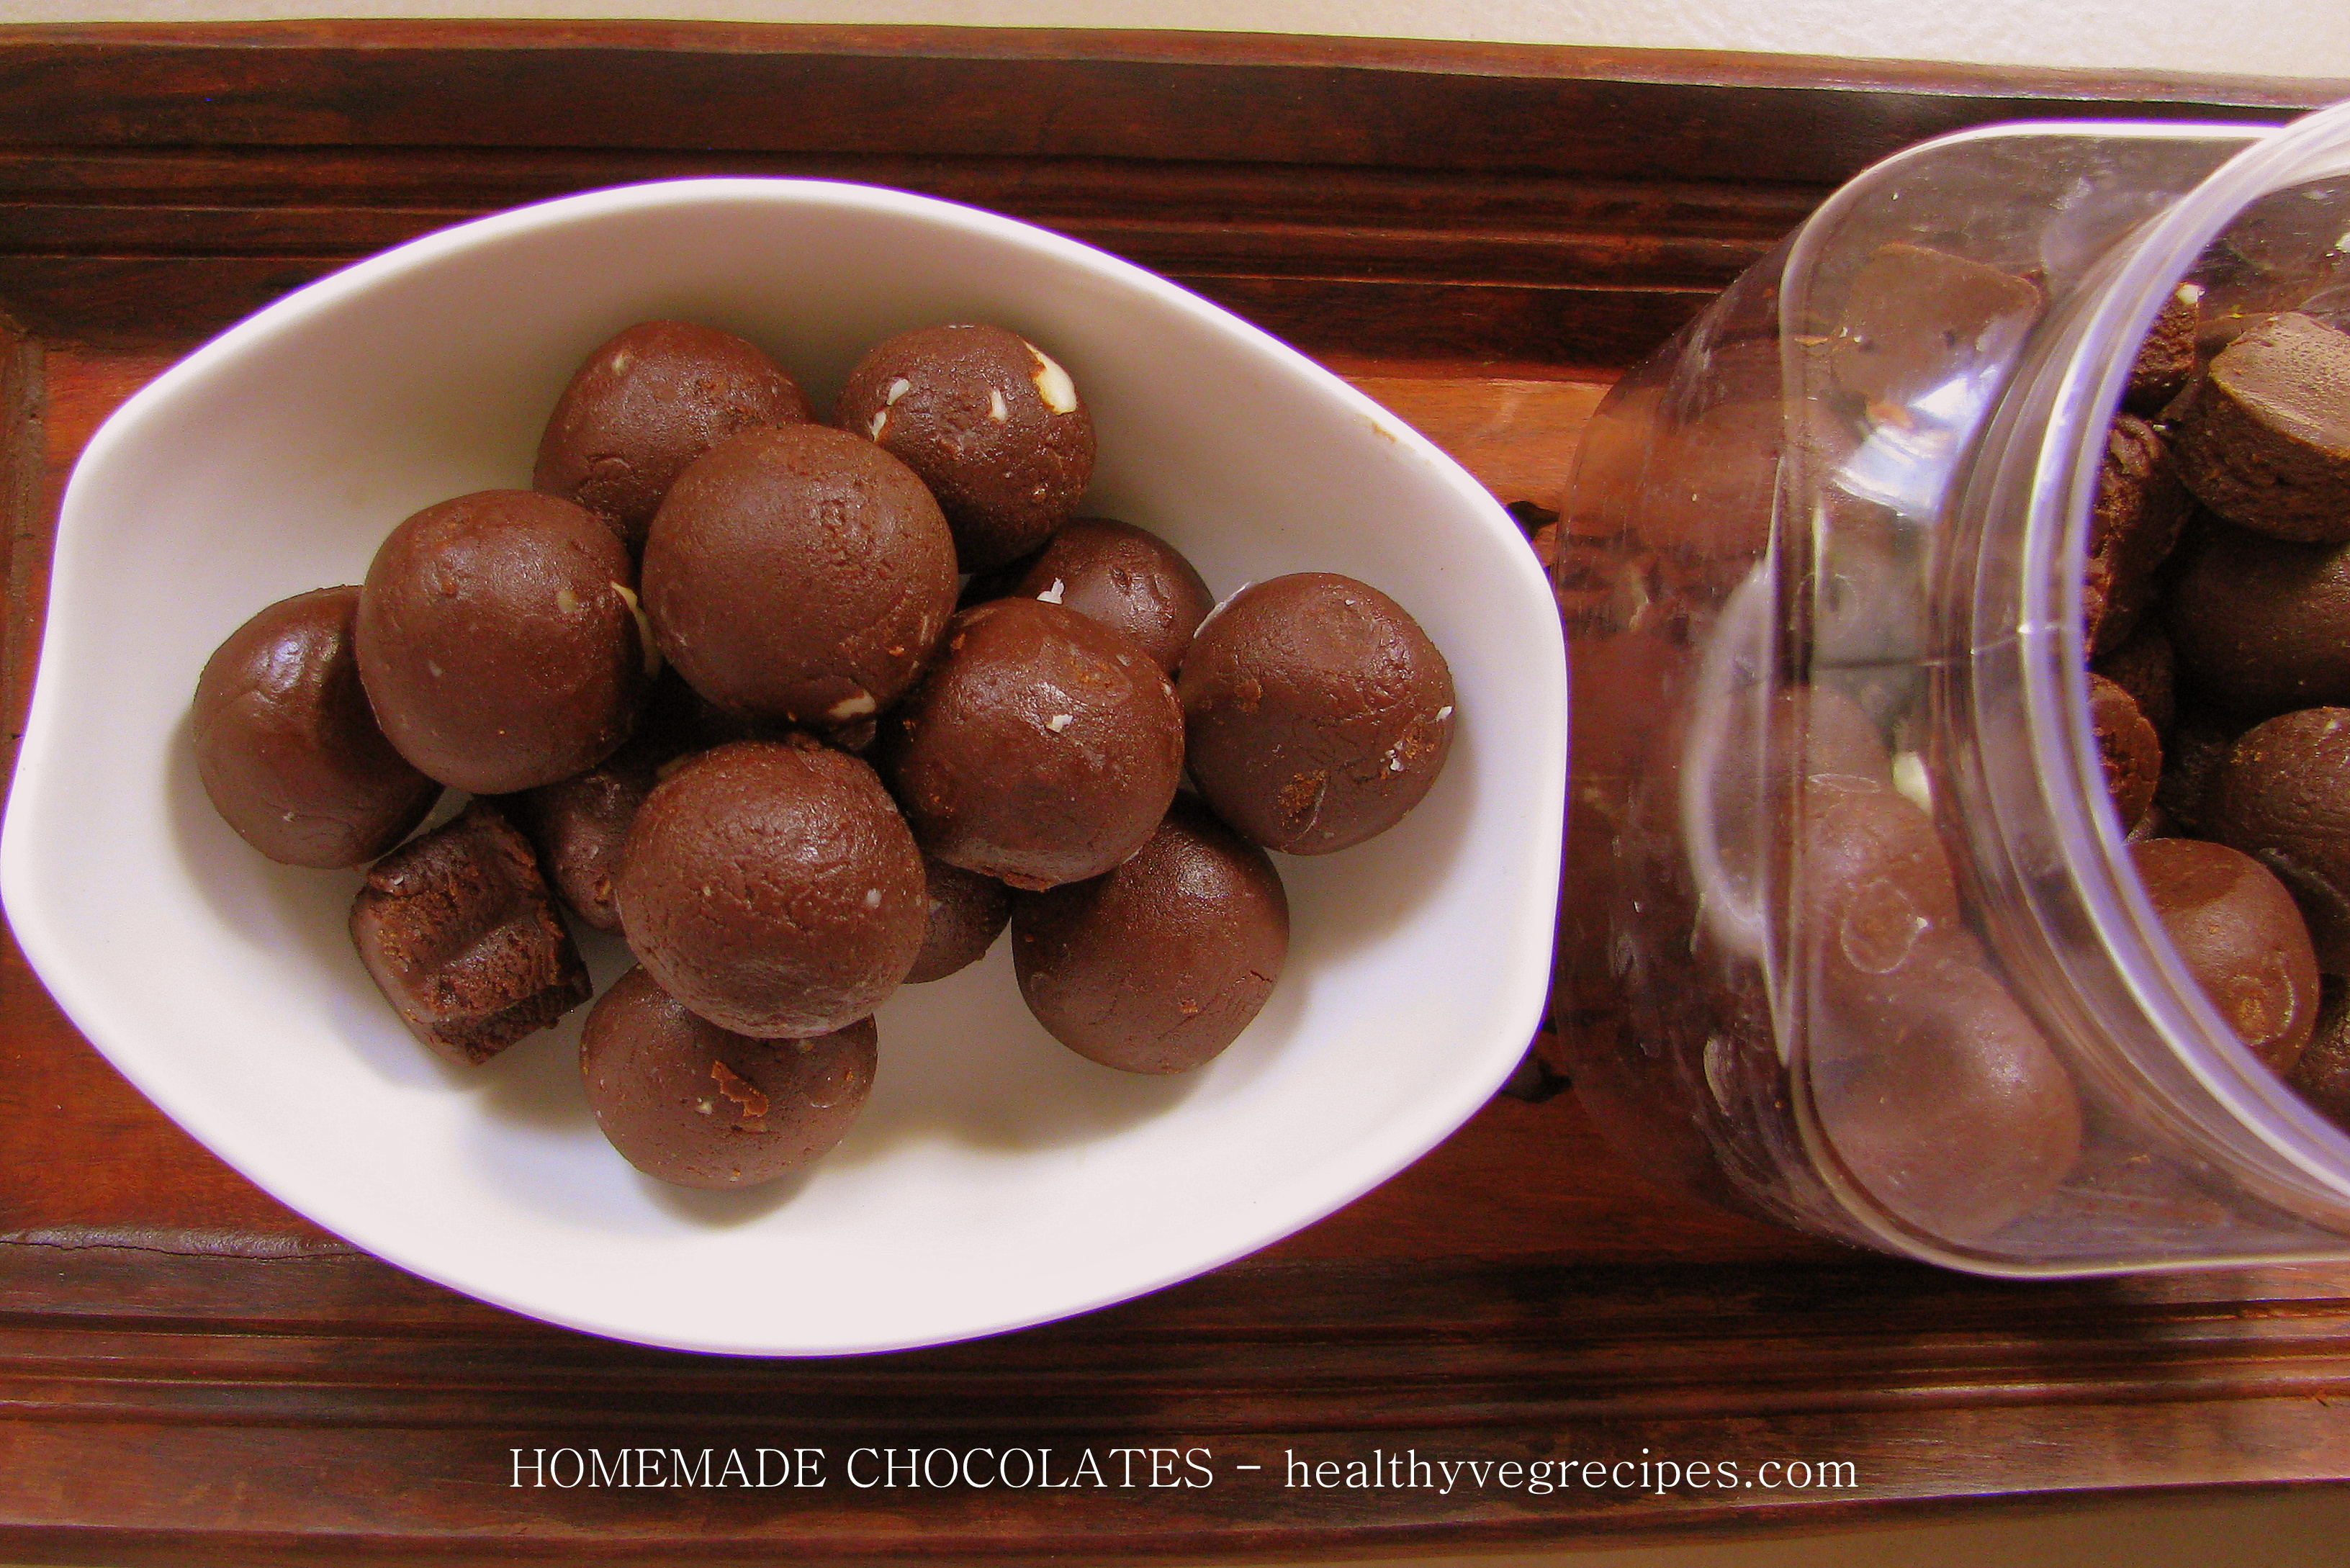 How to make homemade chocolate chocolate recipe from cocoa powder to make chocolate at home from scratch is the dream of everyone when we were kids we used to sing a song asawa sundar chocolate cha bangla its a marathi forumfinder Gallery